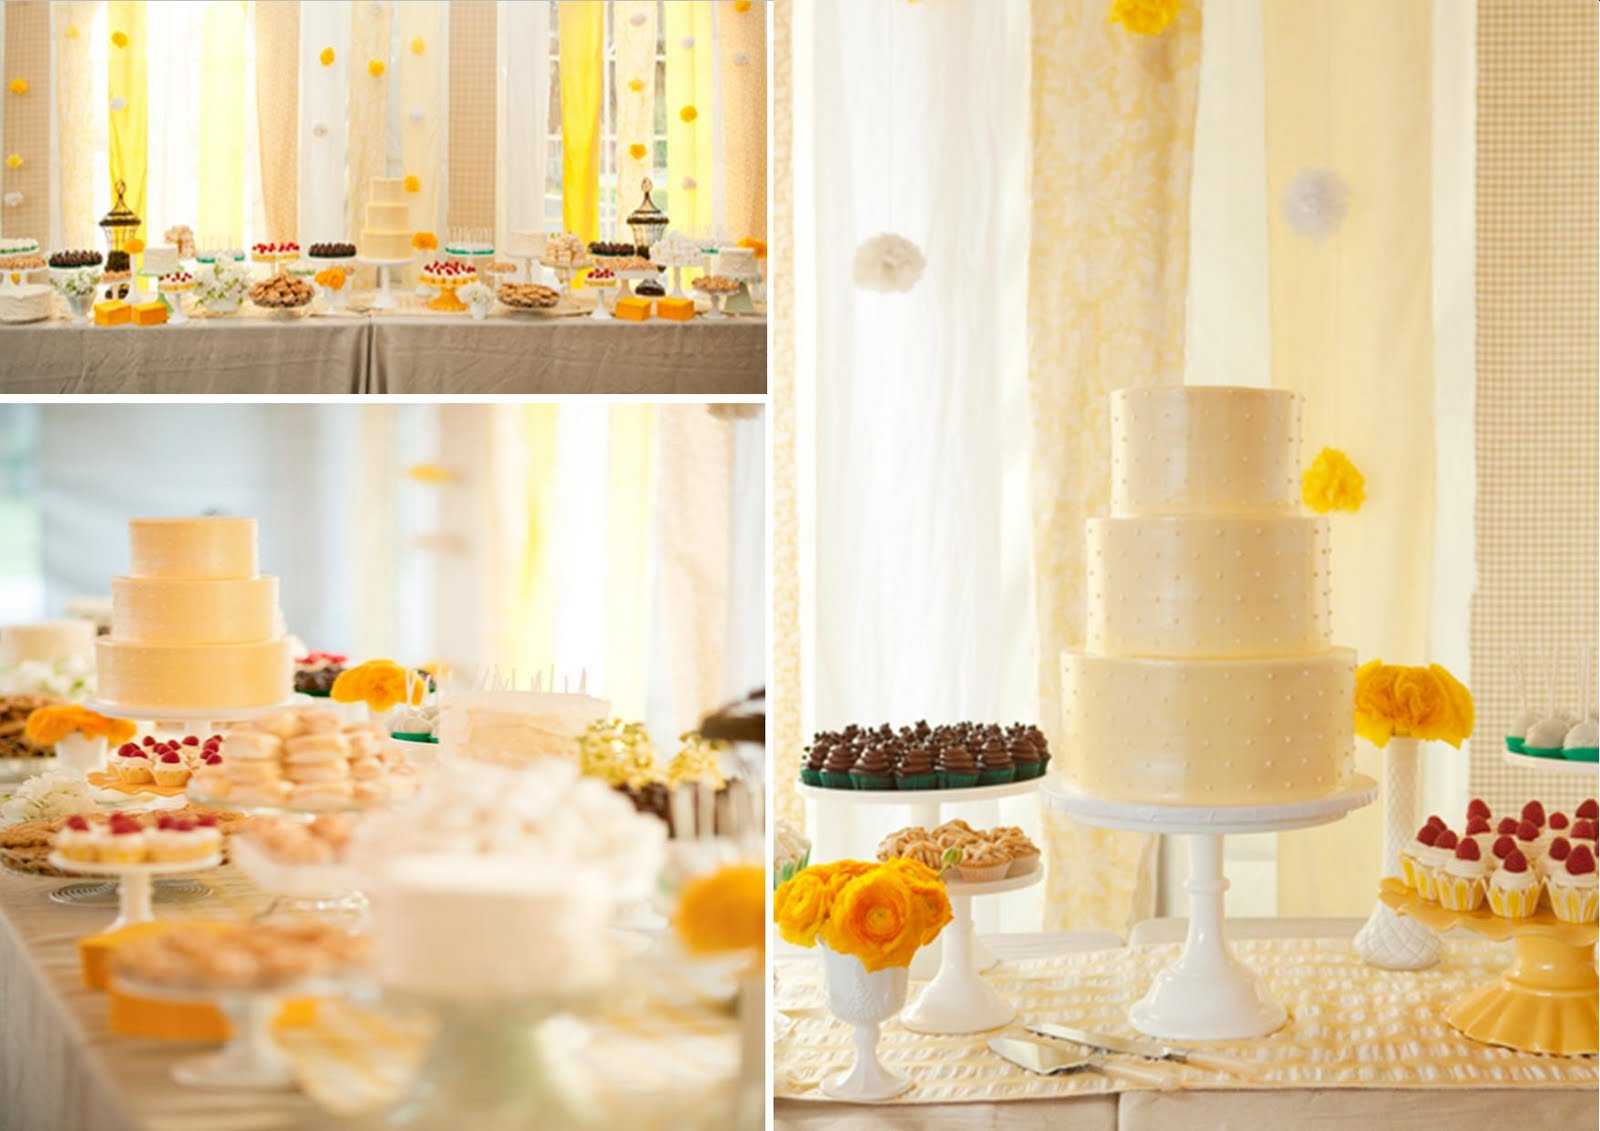 Icing Designs: My Sweet and Saucy Sweet Yellow Dessert Table